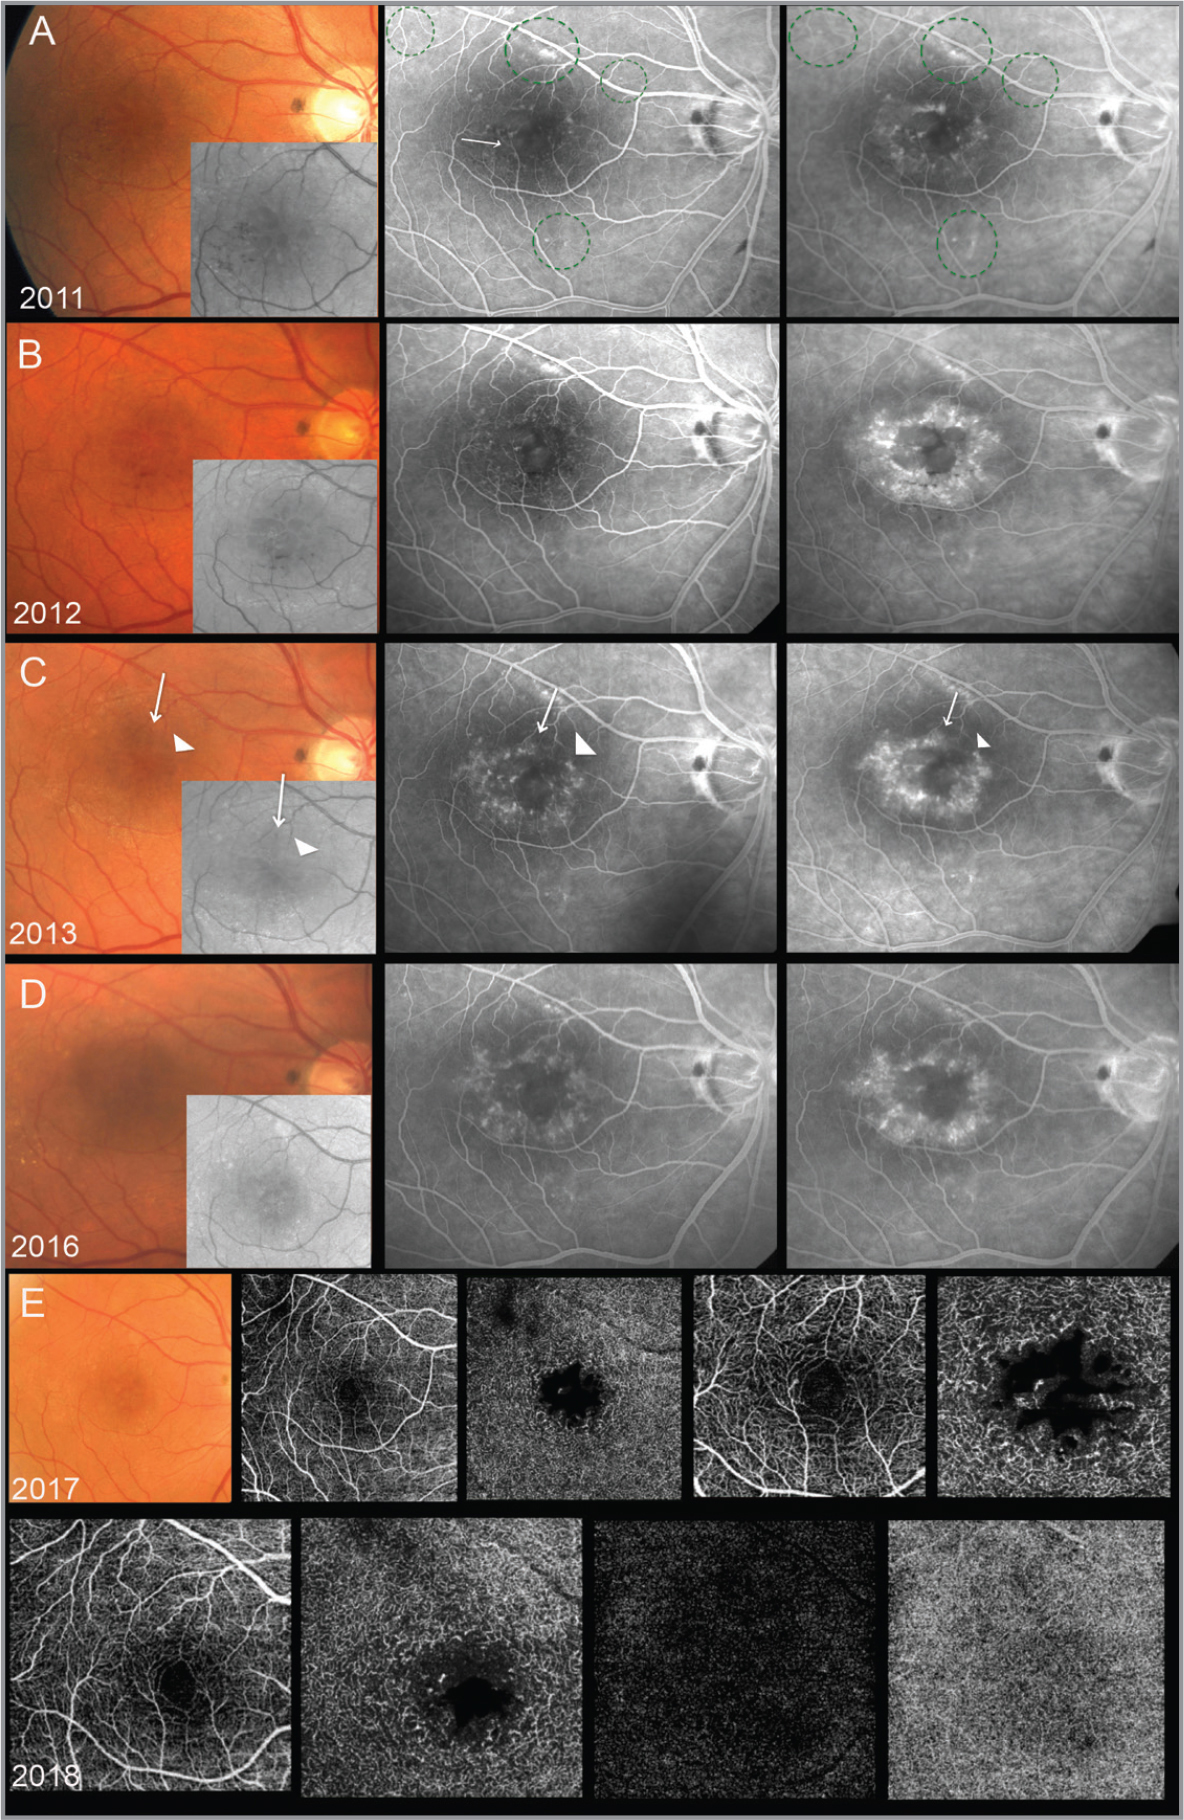 Fundus imaging follow-up of the right eye. (A) Color fundus and red-free photographs, early phase and late-phase fluorescein angiography (FA) of the right eye at first evaluation (July 2011). Color fundus photograph shows macular telangiectasia with small preretinal hemorrhages, macular cysts, and crystalline deposits. These findings are better detected on red-free imaging (small box). Early phase FA reveals ectatic capillaries at the posterior pole not only at the perifovea (green circles) and one blunted slightly dilated venule (arrow). Late-phase FA shows leakage from ectatic capillaries. (B) Color fundus and red-free photographs, early-phase and late-phase FA (November 2012). Color fundus photograph and red-free images show a reduction of the ectatic capillaries and the preretinal hemorrhages. (C) Color fundus and red-free photographs, early phase and late-phase FA (August 2013). The telangiectasia is almost imperceptible at the color fundus and red-free imaging although it is well seen at the early and late FA stages. Ectatic capillary (arrowhead). Pre-retinal dot hemorrhage (arrow). (D) Color fundus and red-free photographs, early phase and late-phase FA. In this figure at the color fundus and red-free imaging, telangiectasia and hemorrhages are not detectable (October 2016). (E) Color fundus photograph, optical coherence tomography angiography (OCTA) of superficial and deep vascular network. On the left, the first two images show 6 × 6 OCTA scans; the other two images show 3 × 3 OCTA scans (May 2017). OCTA revealed saccular capillary telangiectasia and loss of parafoveal vascular density. In particular, it is possible to see the dilated vessels in the deep retinal capillary plexus that are the most pronounced in the region temporal to the fovea. (F) OCTA of superficial and deep vascular network, outer retinal segments, and choriocapillaris (January 2018). Images show 4.5 × 4.5 OCTA scans. Outer retinal segments and choriocapillaris do not show flow signal.